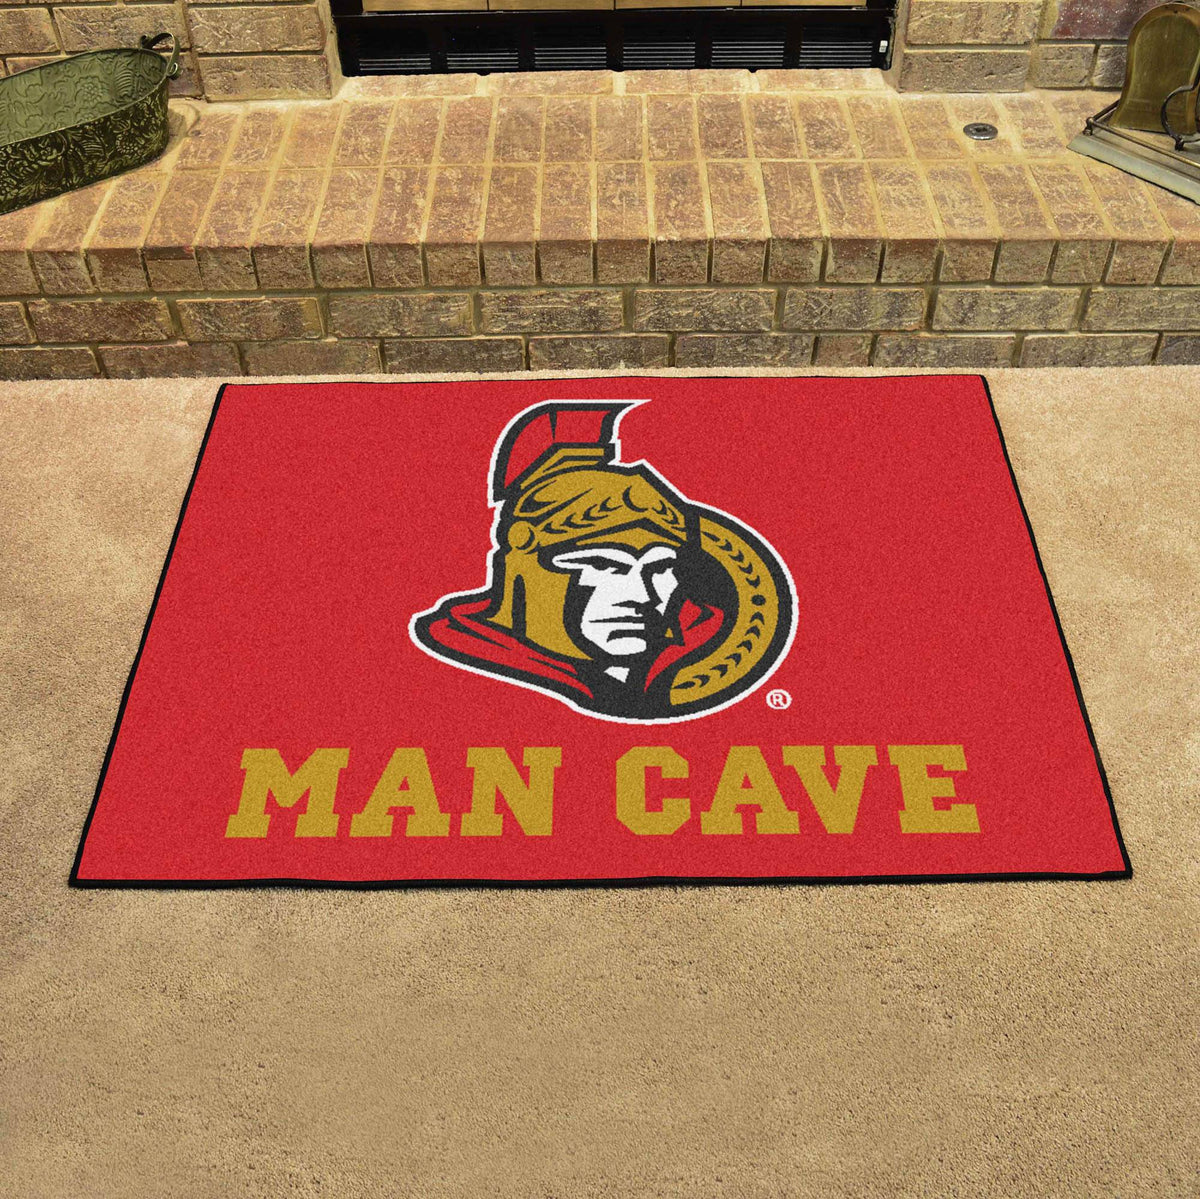 NHL - Man Cave All-Star NHL Mats, Rectangular Mats, Man Cave All-Star Mat, NHL, Home Fan Mats Ottawa Senators